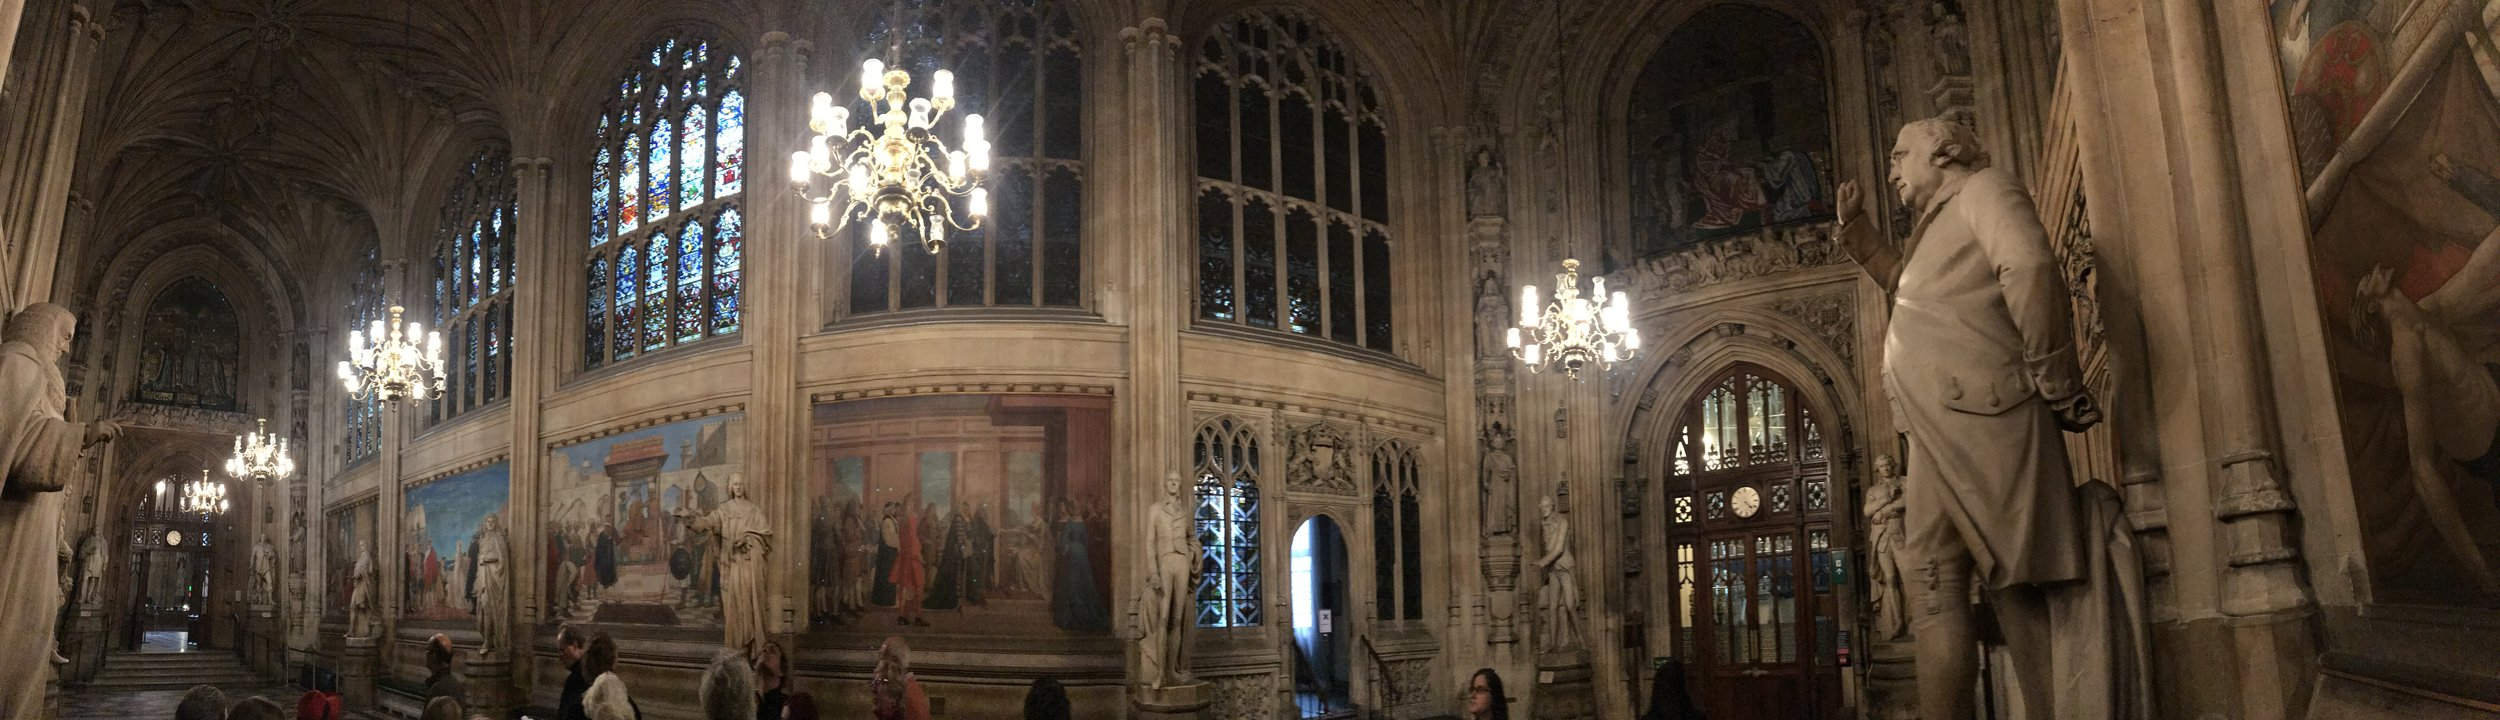 Panorama of St. Stephen's Hall, Palace of Westminster. All photographs by Grace Lees-Maffei.